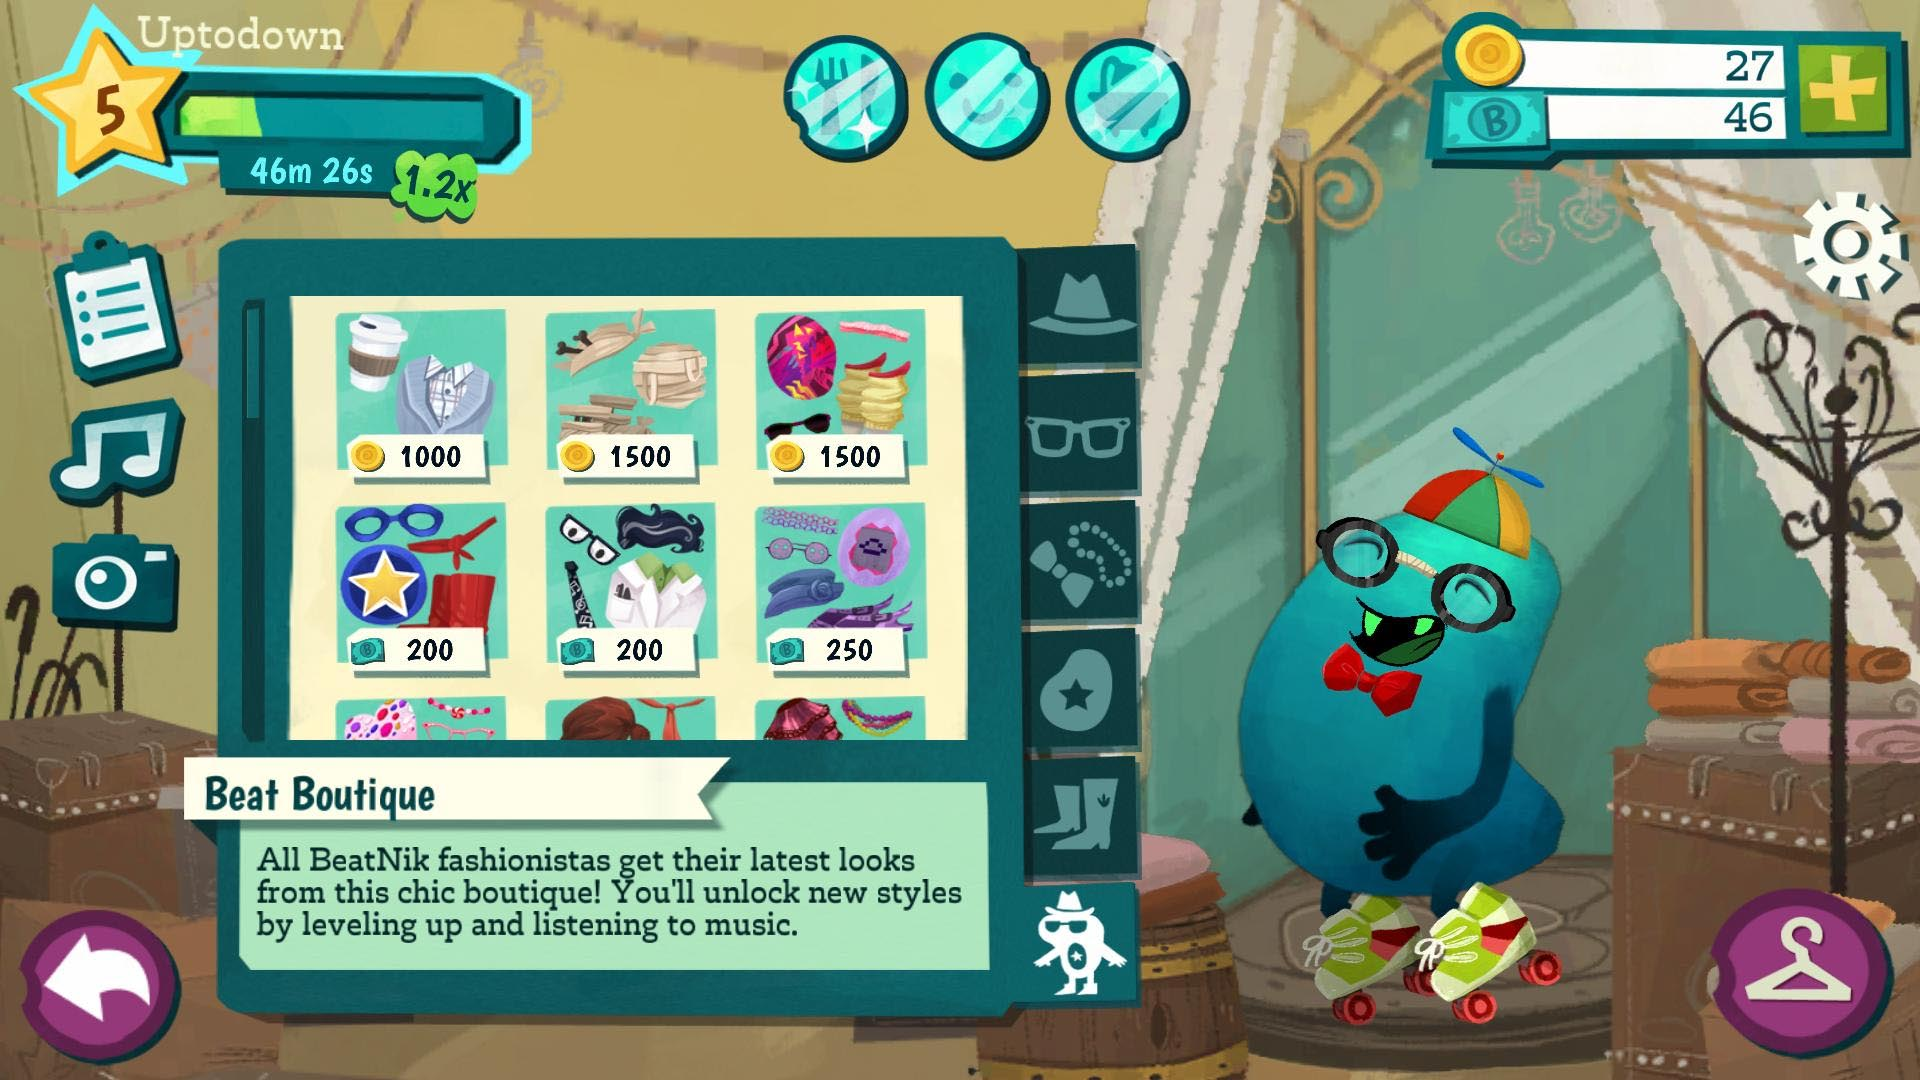 BeatNiks, the virtual pet that grows with your music